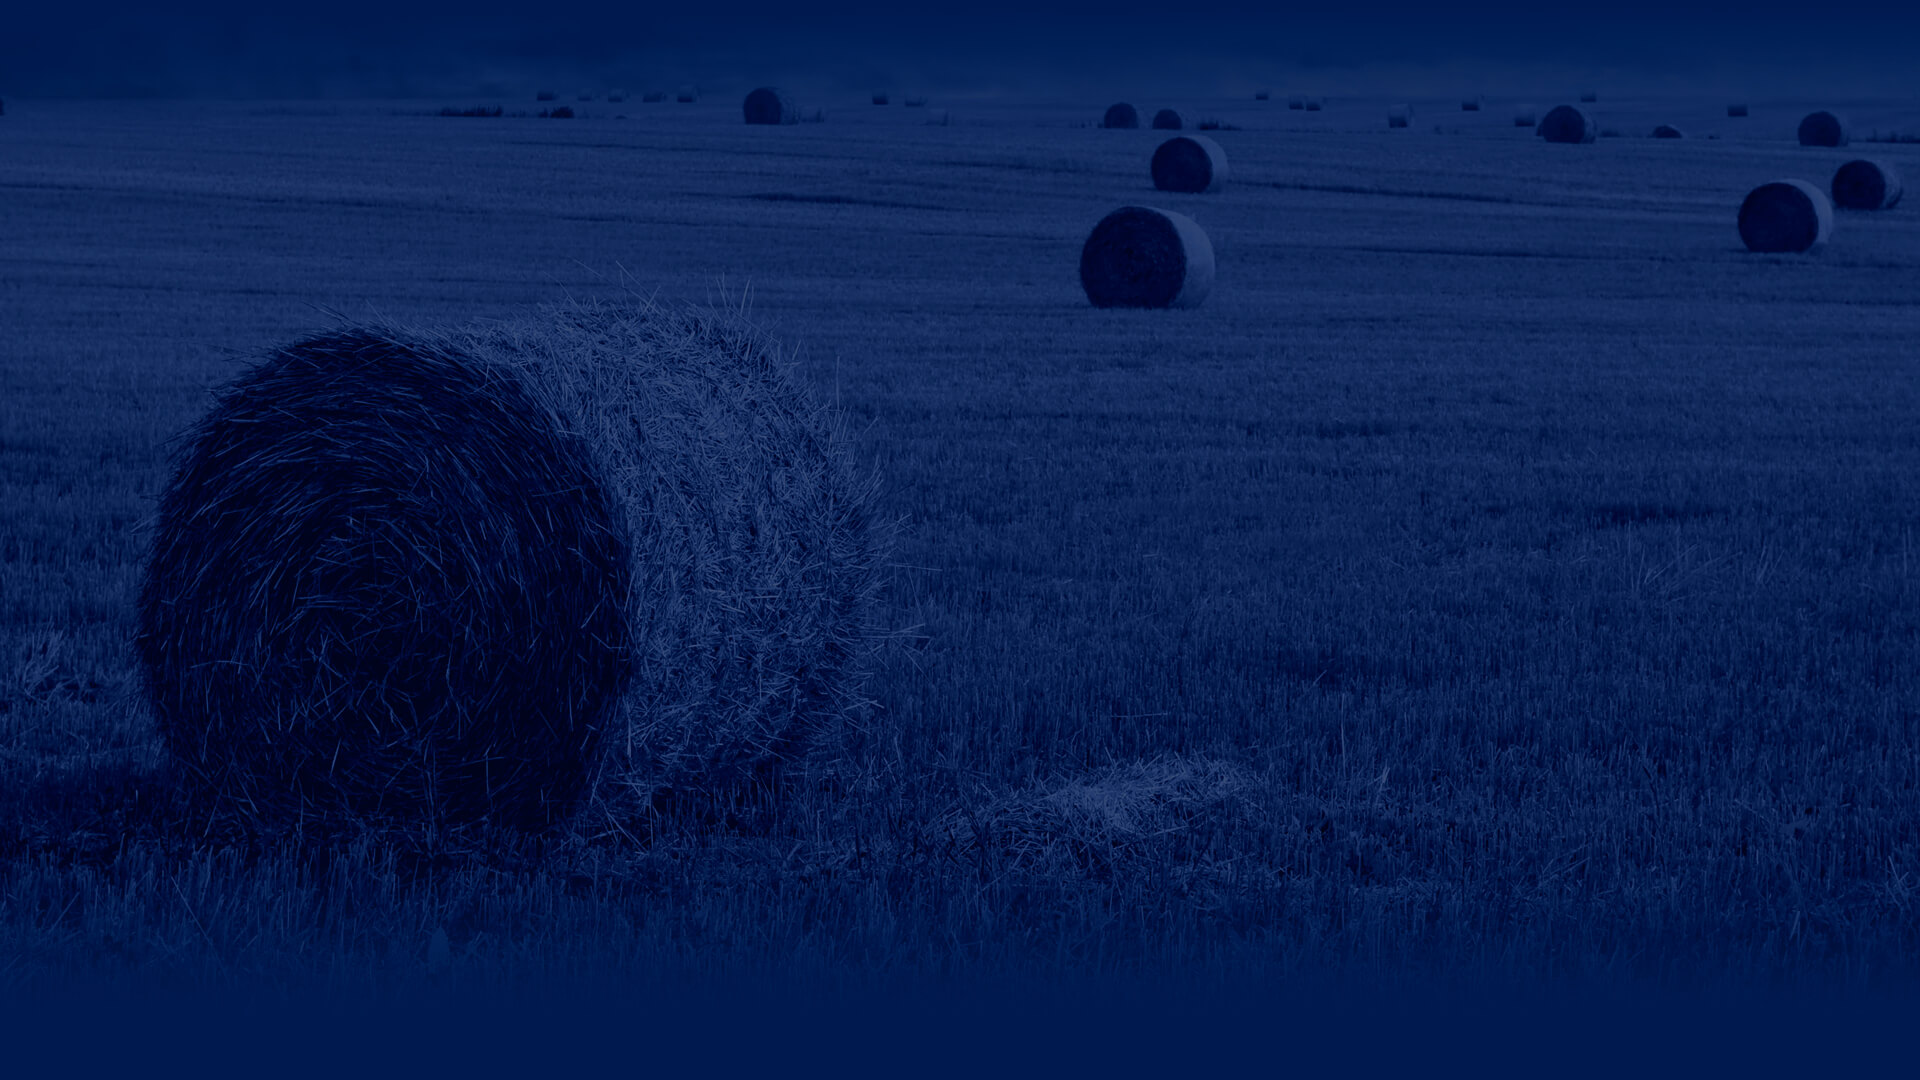 blue backround of a field with rolls of hay